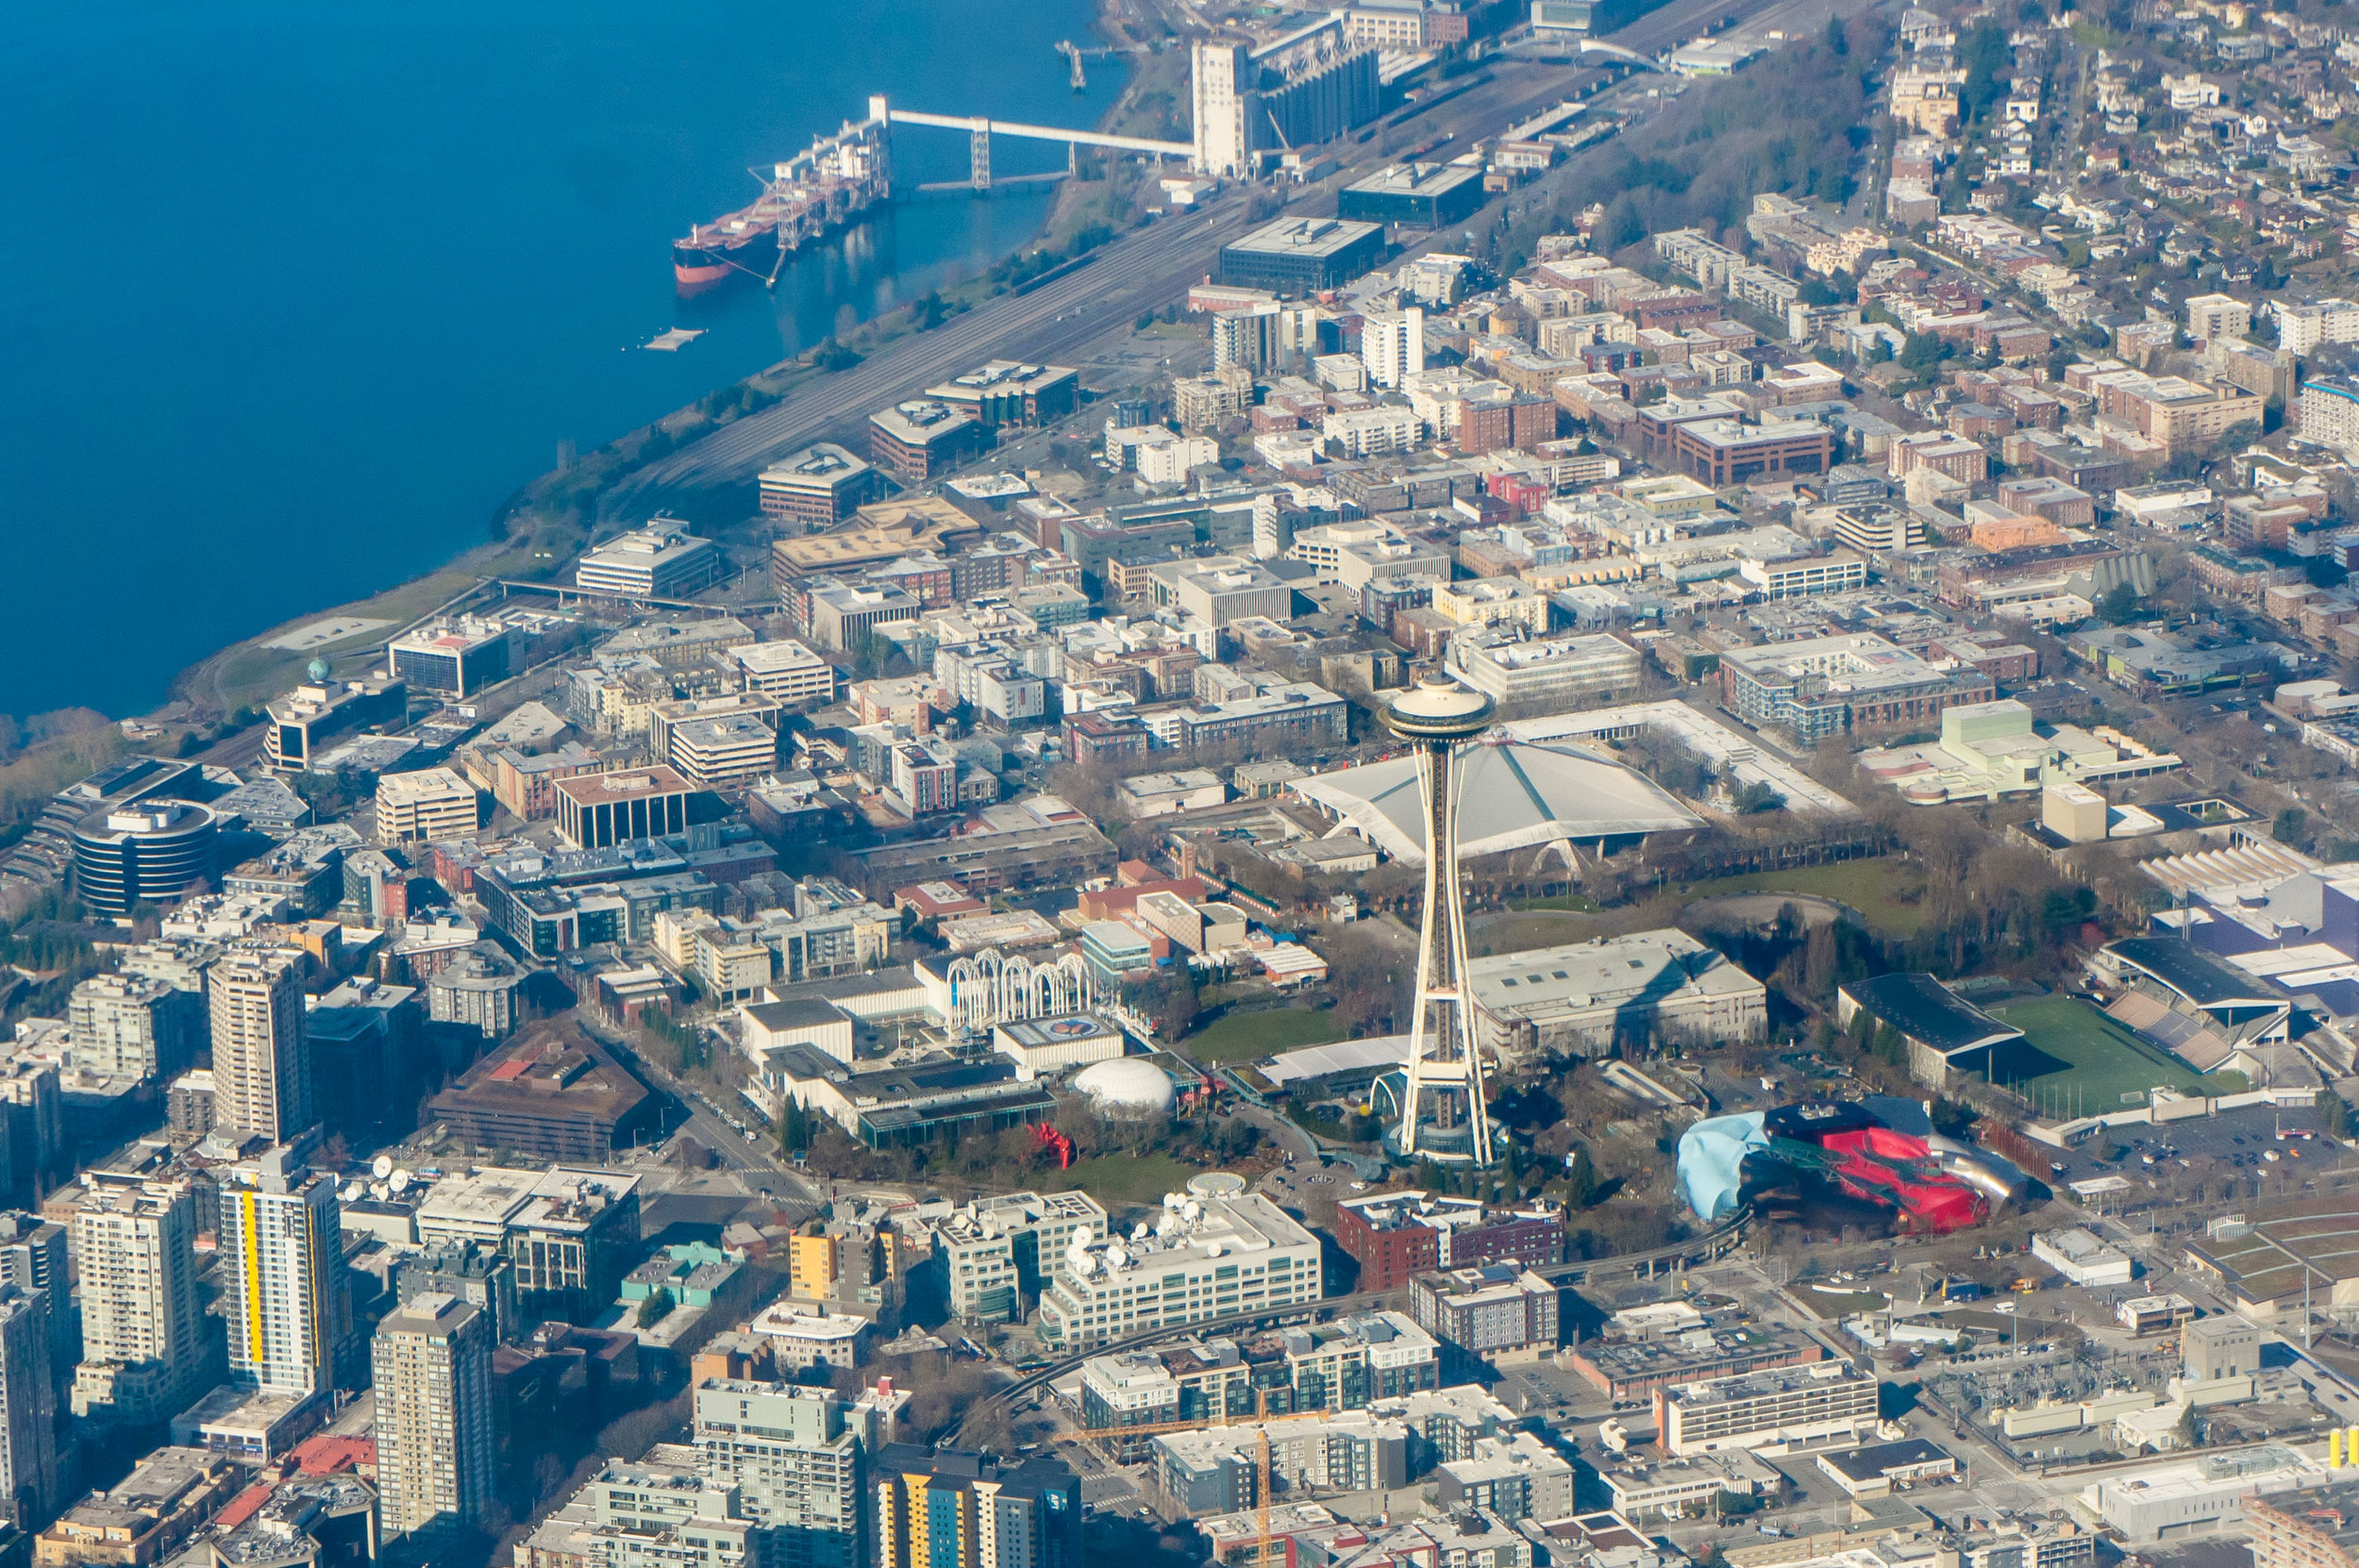 Seattle - Space Needle aerial.jpg